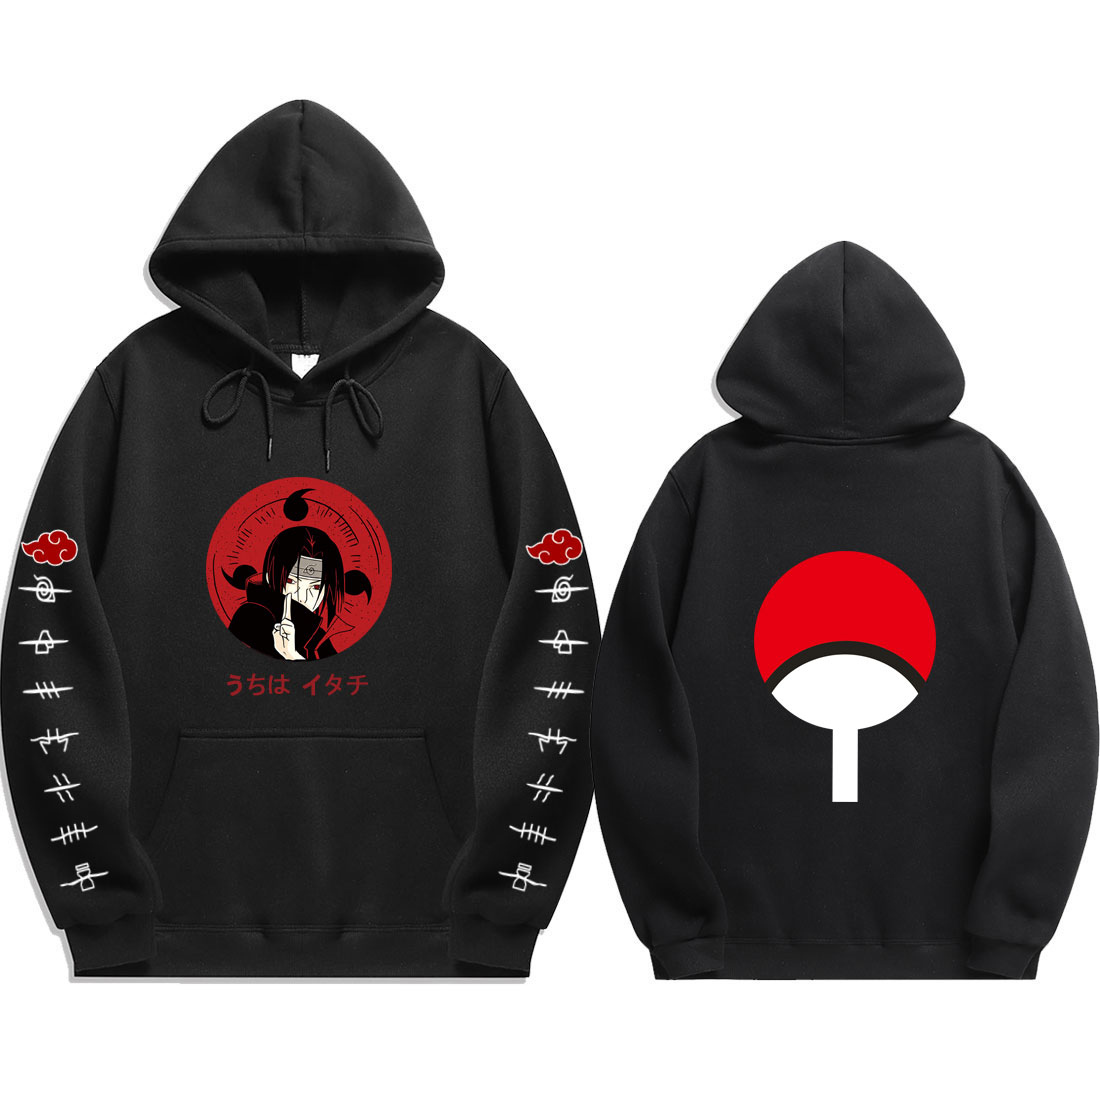 Trend style Japan Anime Handsome lead character   Dynamic Hoodies character  Hip hop   Hoodies